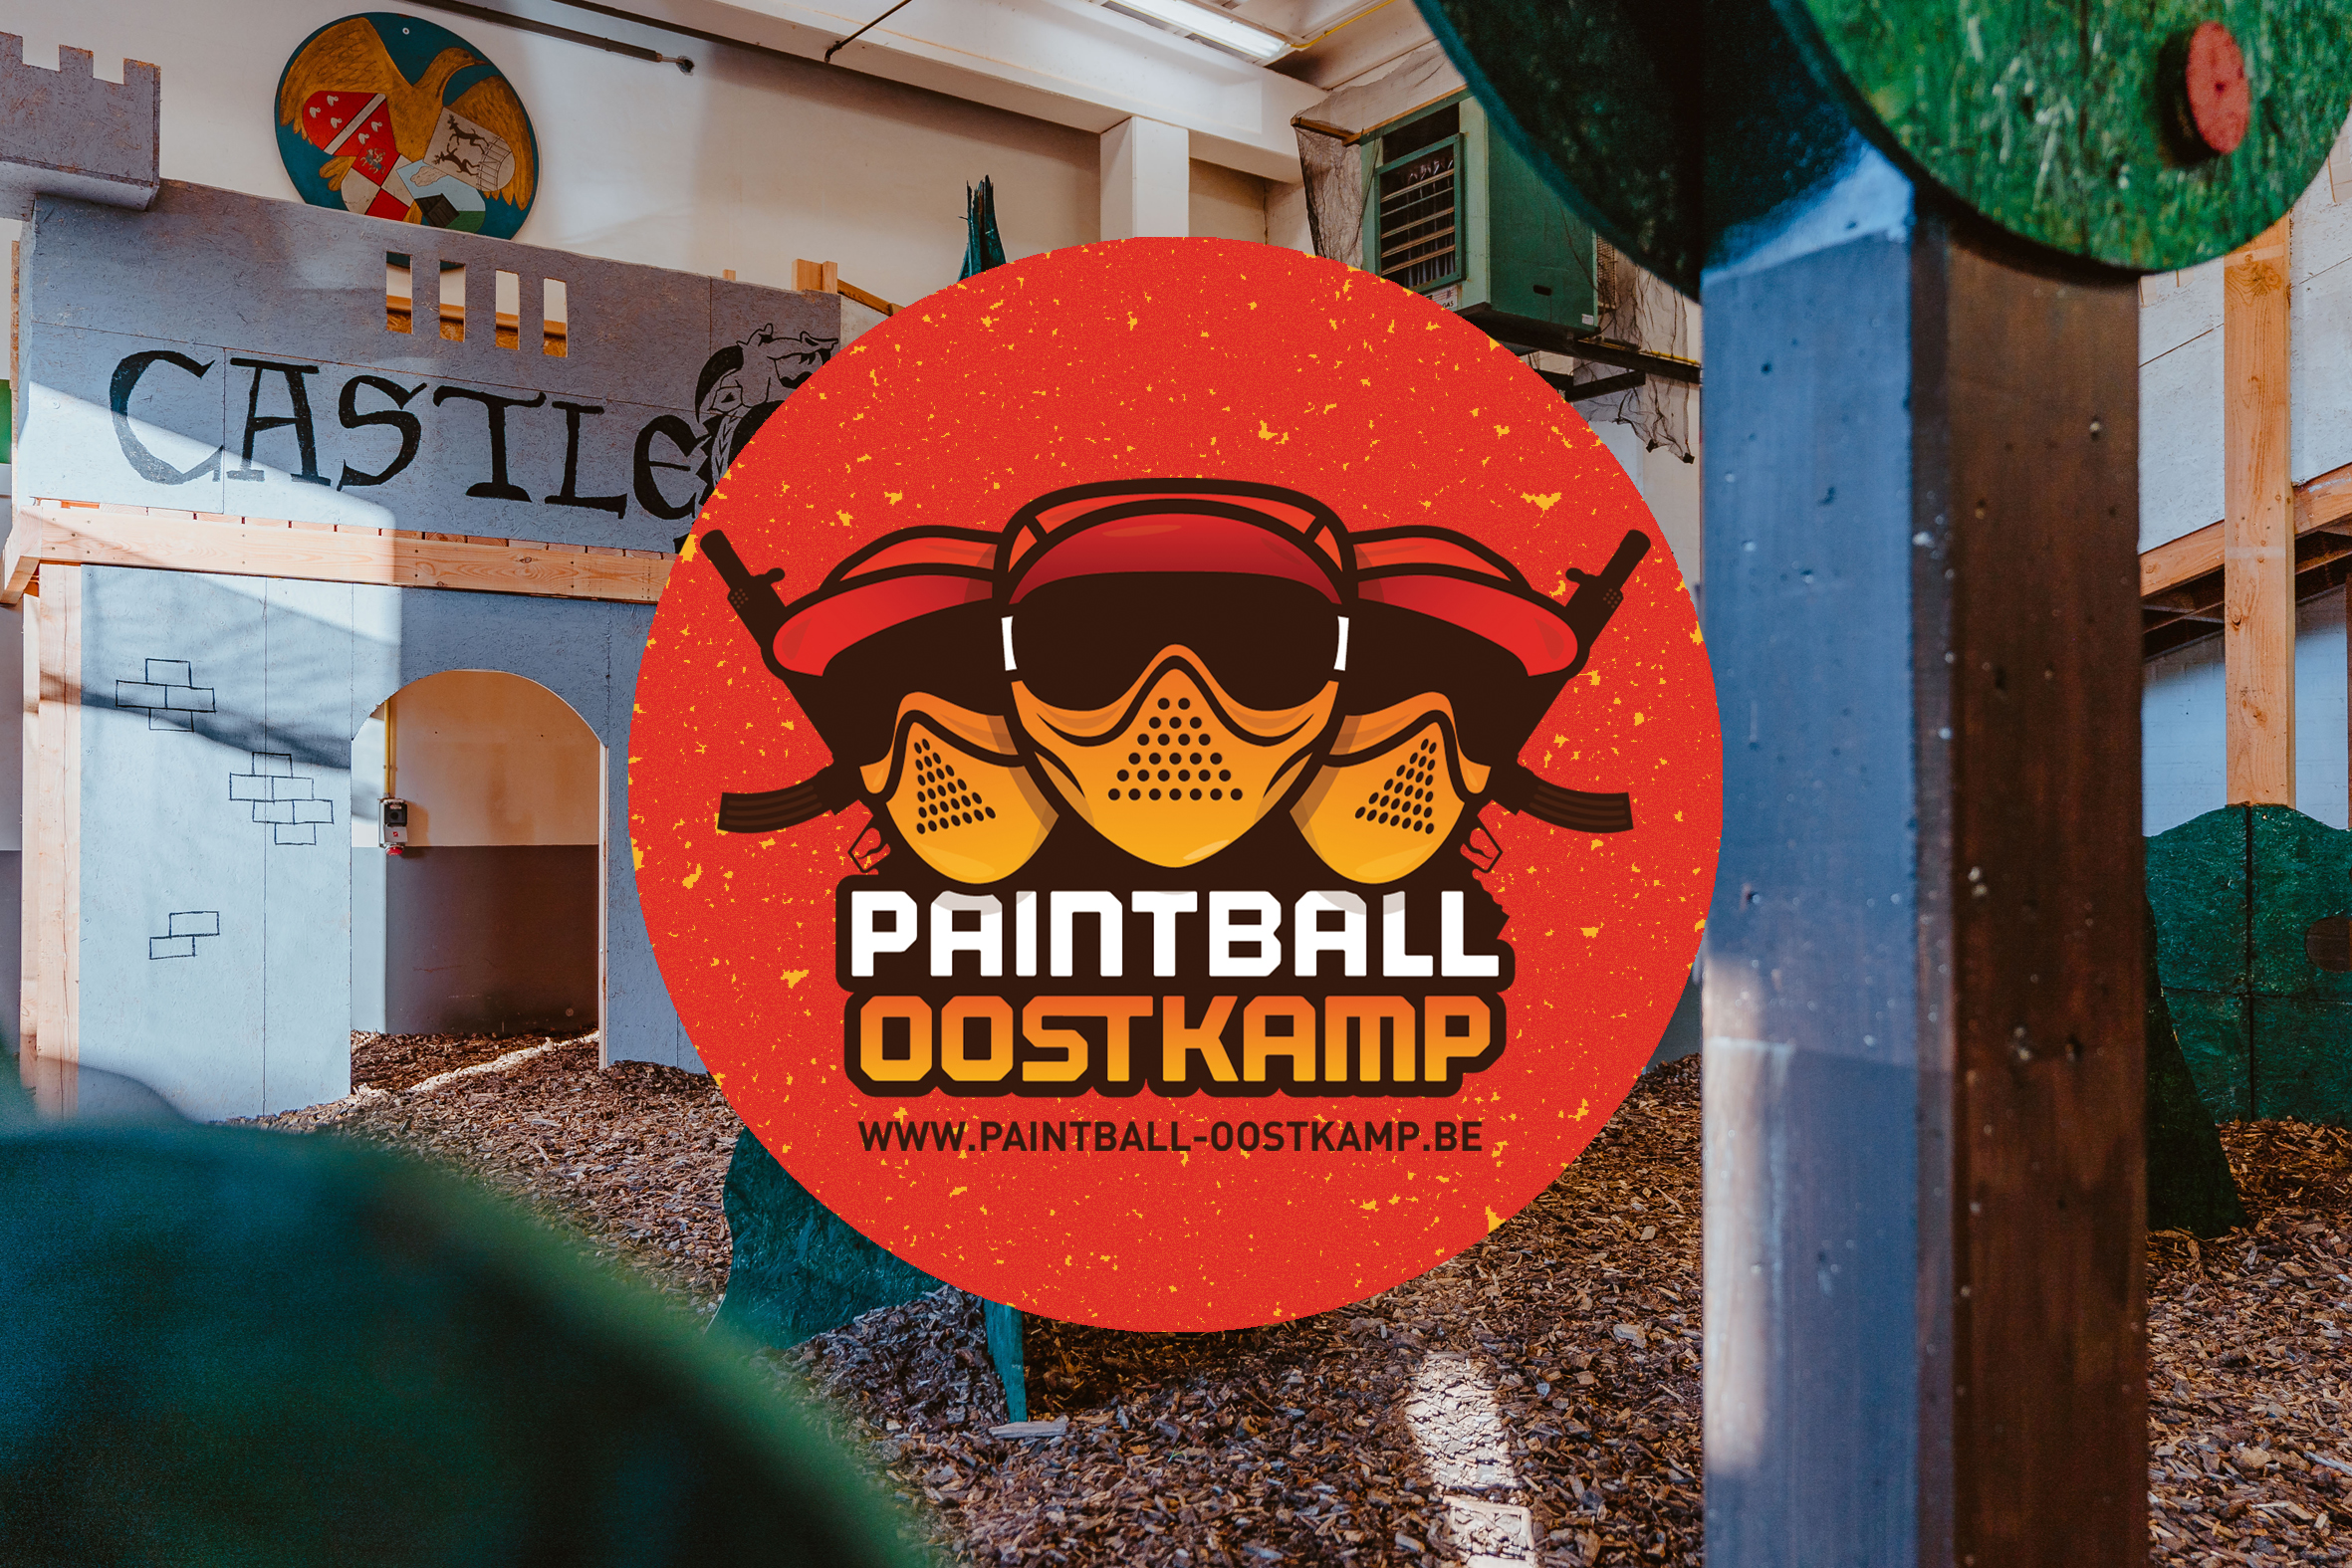 INDOOR KINDERPAINTBALL